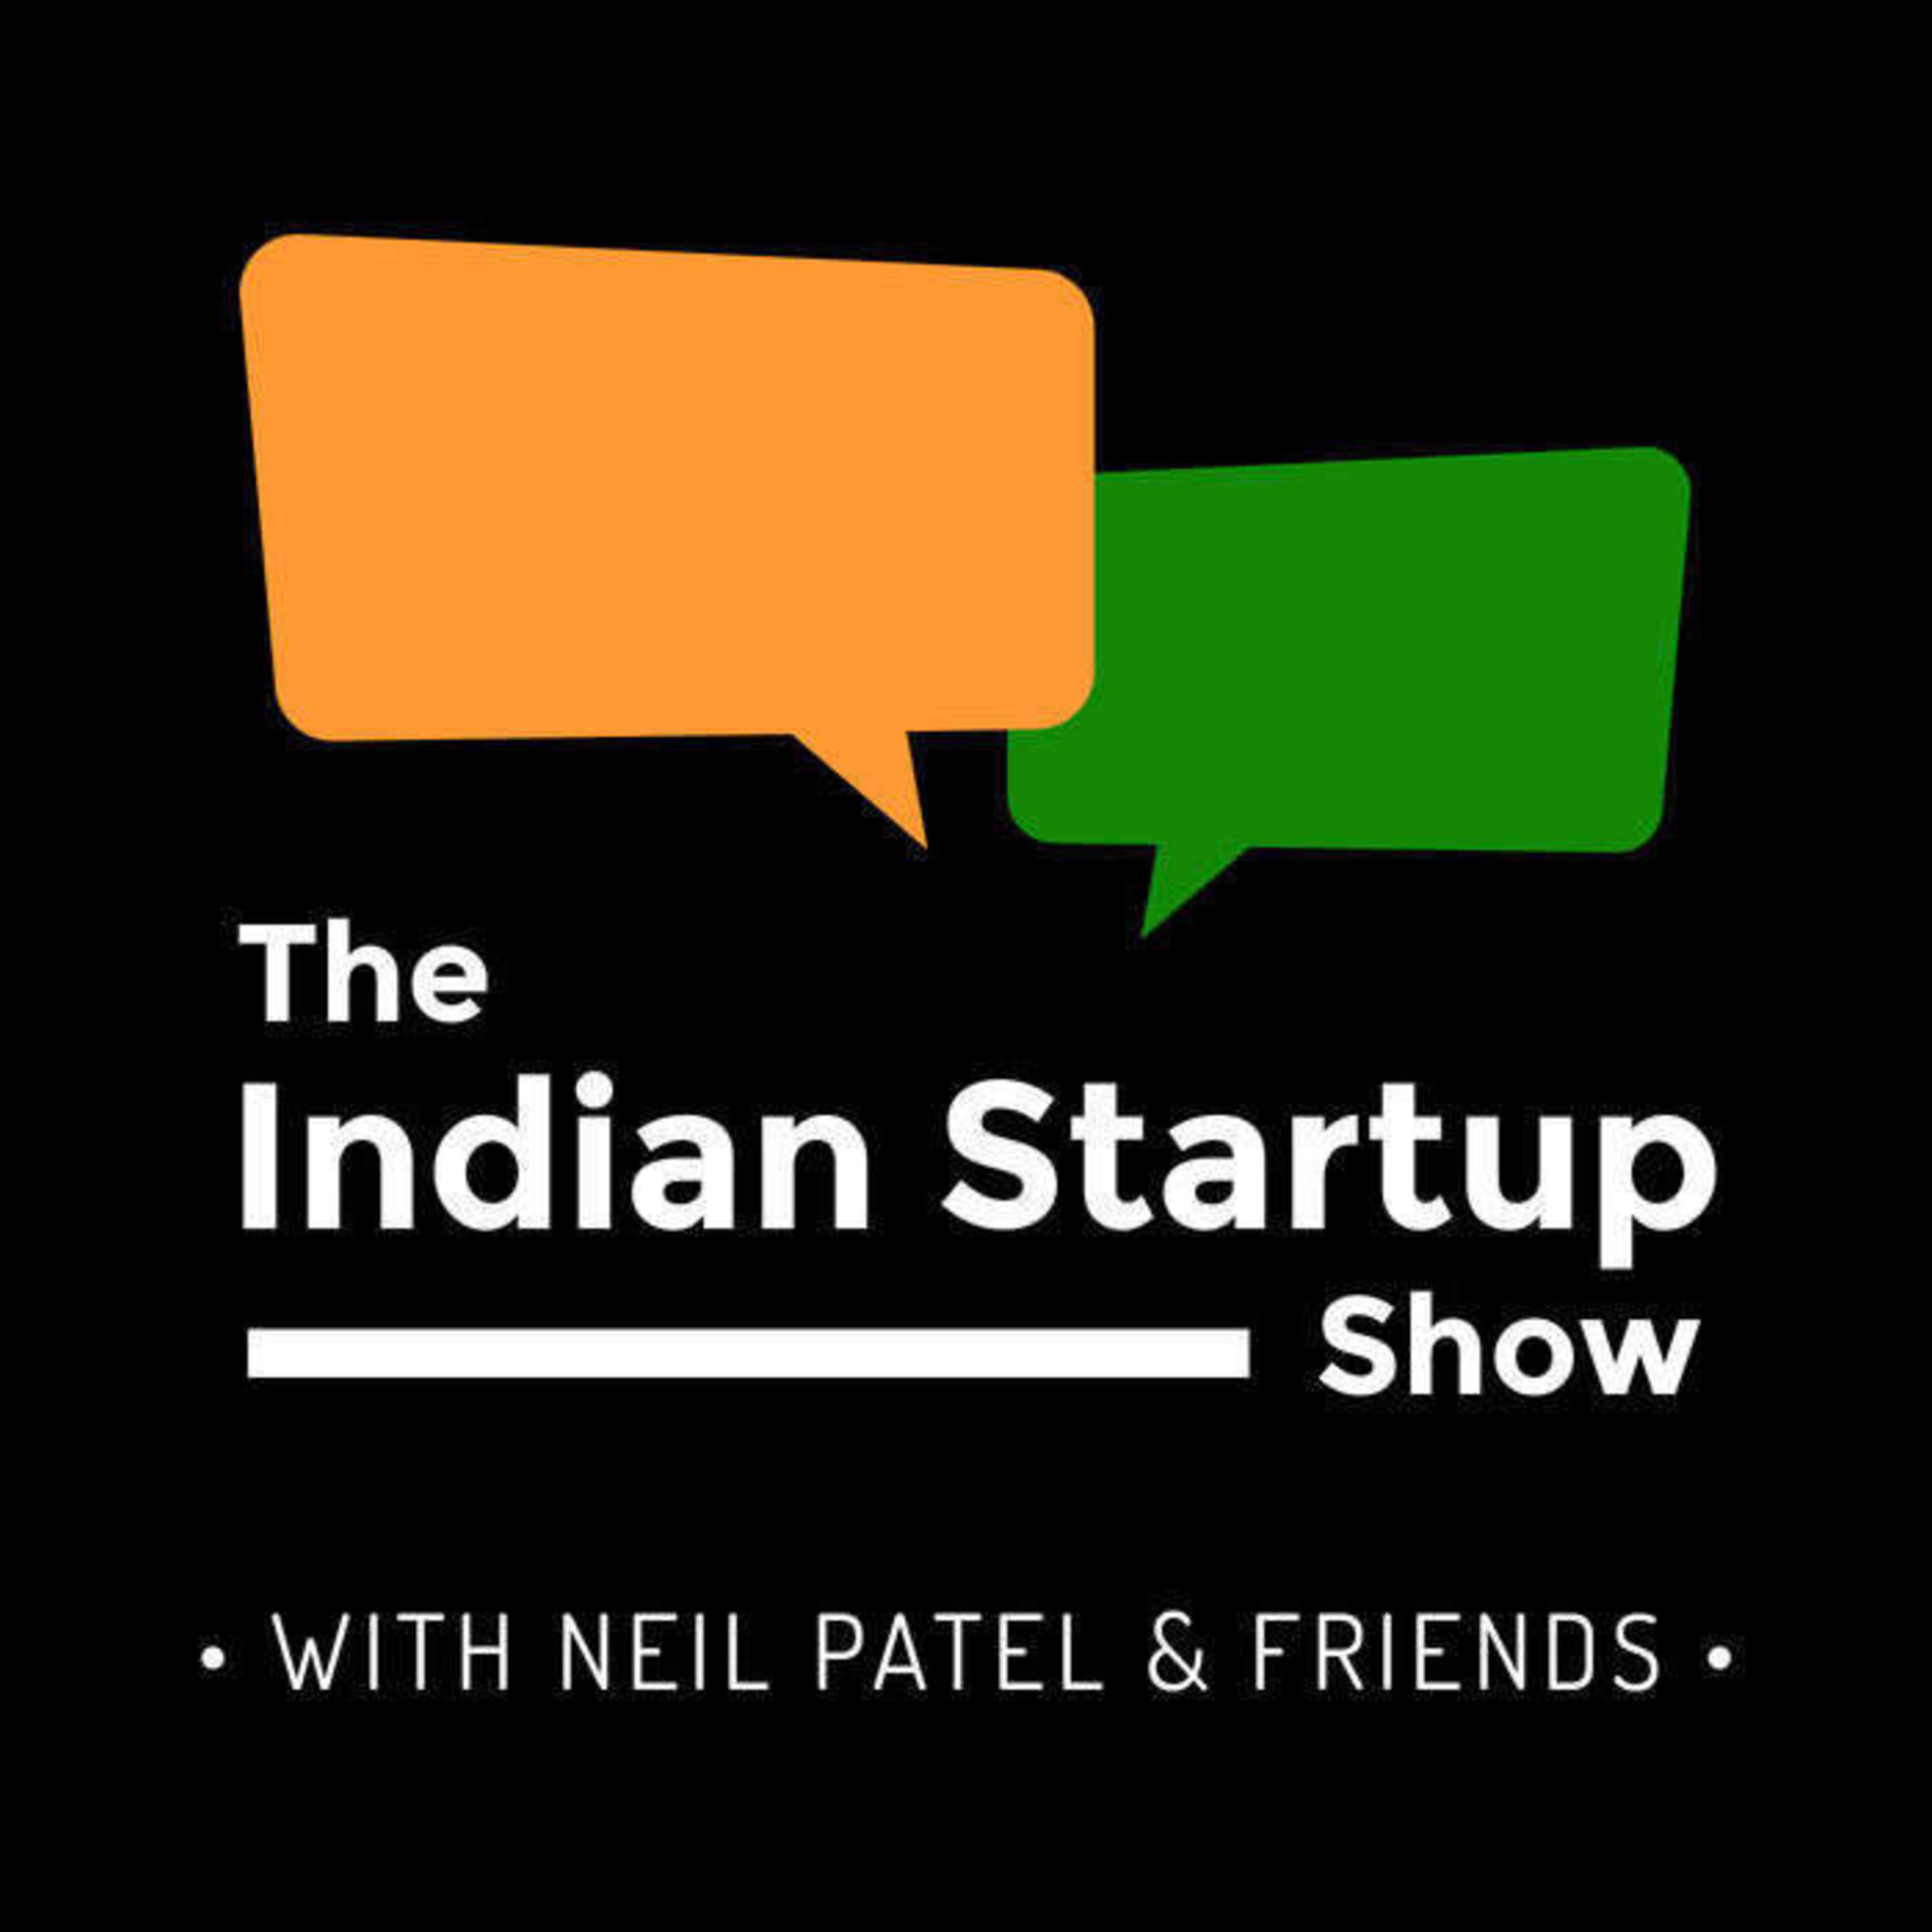 #109 Divyam Goel CEO of AttainU-On disrupting the Indian education system by training people online to be software engineers at no up-front cost.